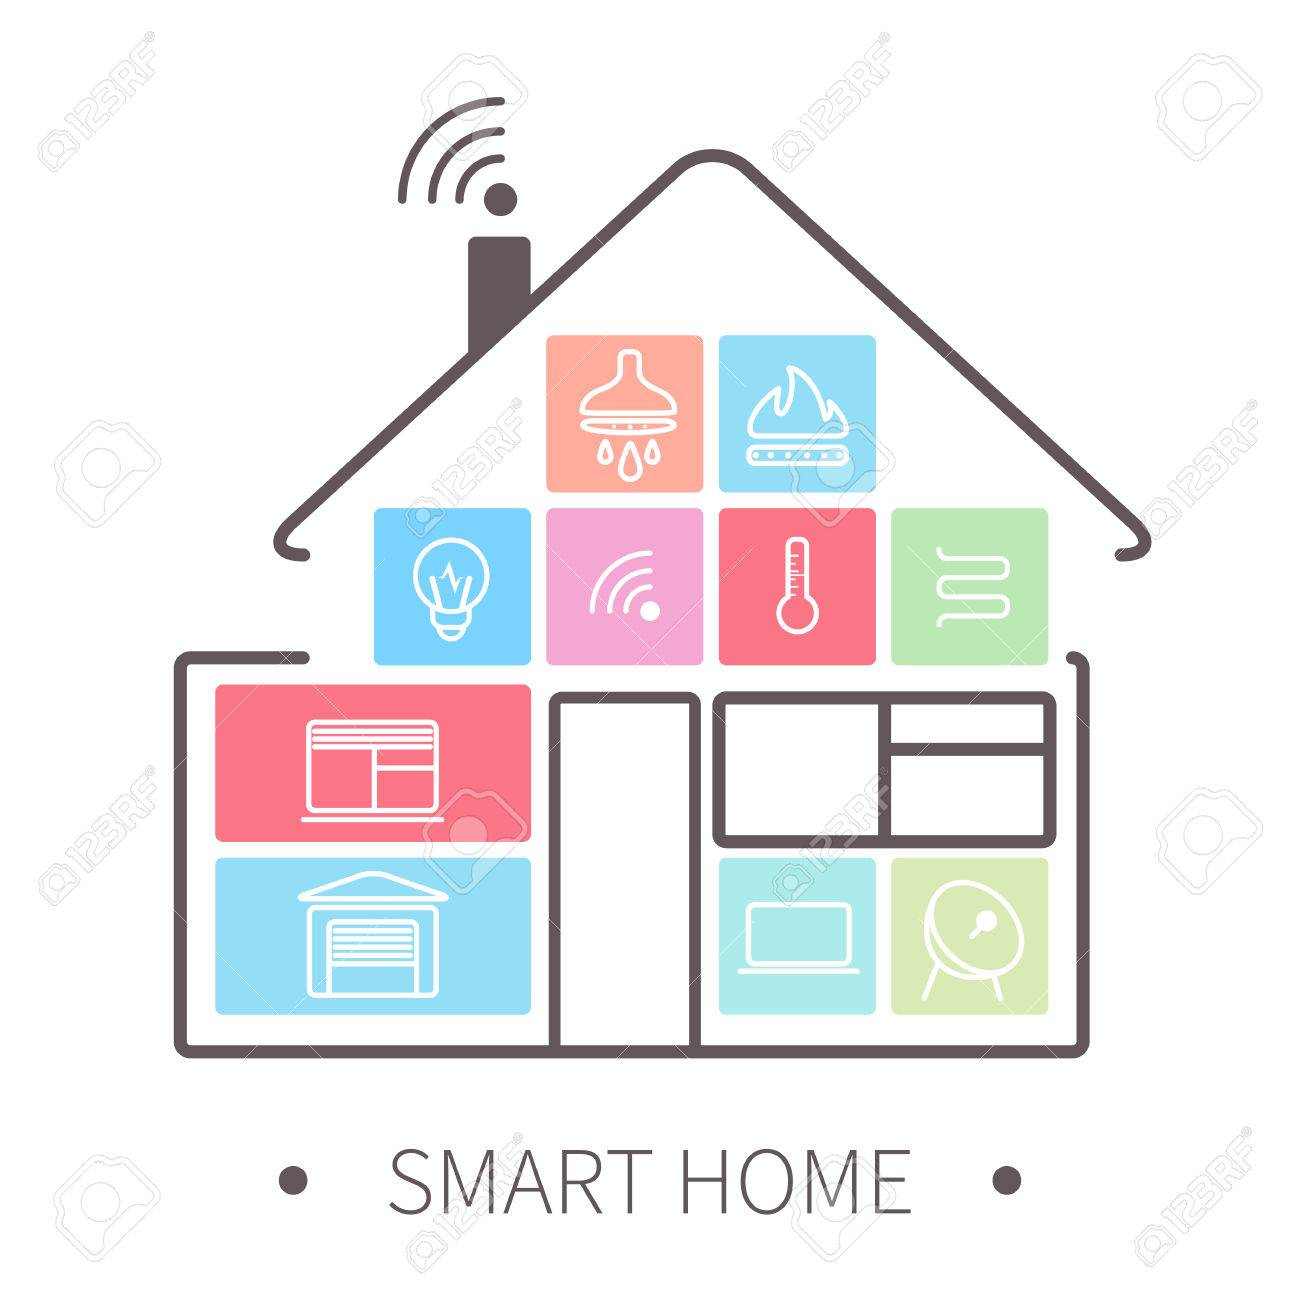 Smart Home With Outline Icons On Smart Phone. Stock Vector   38093710